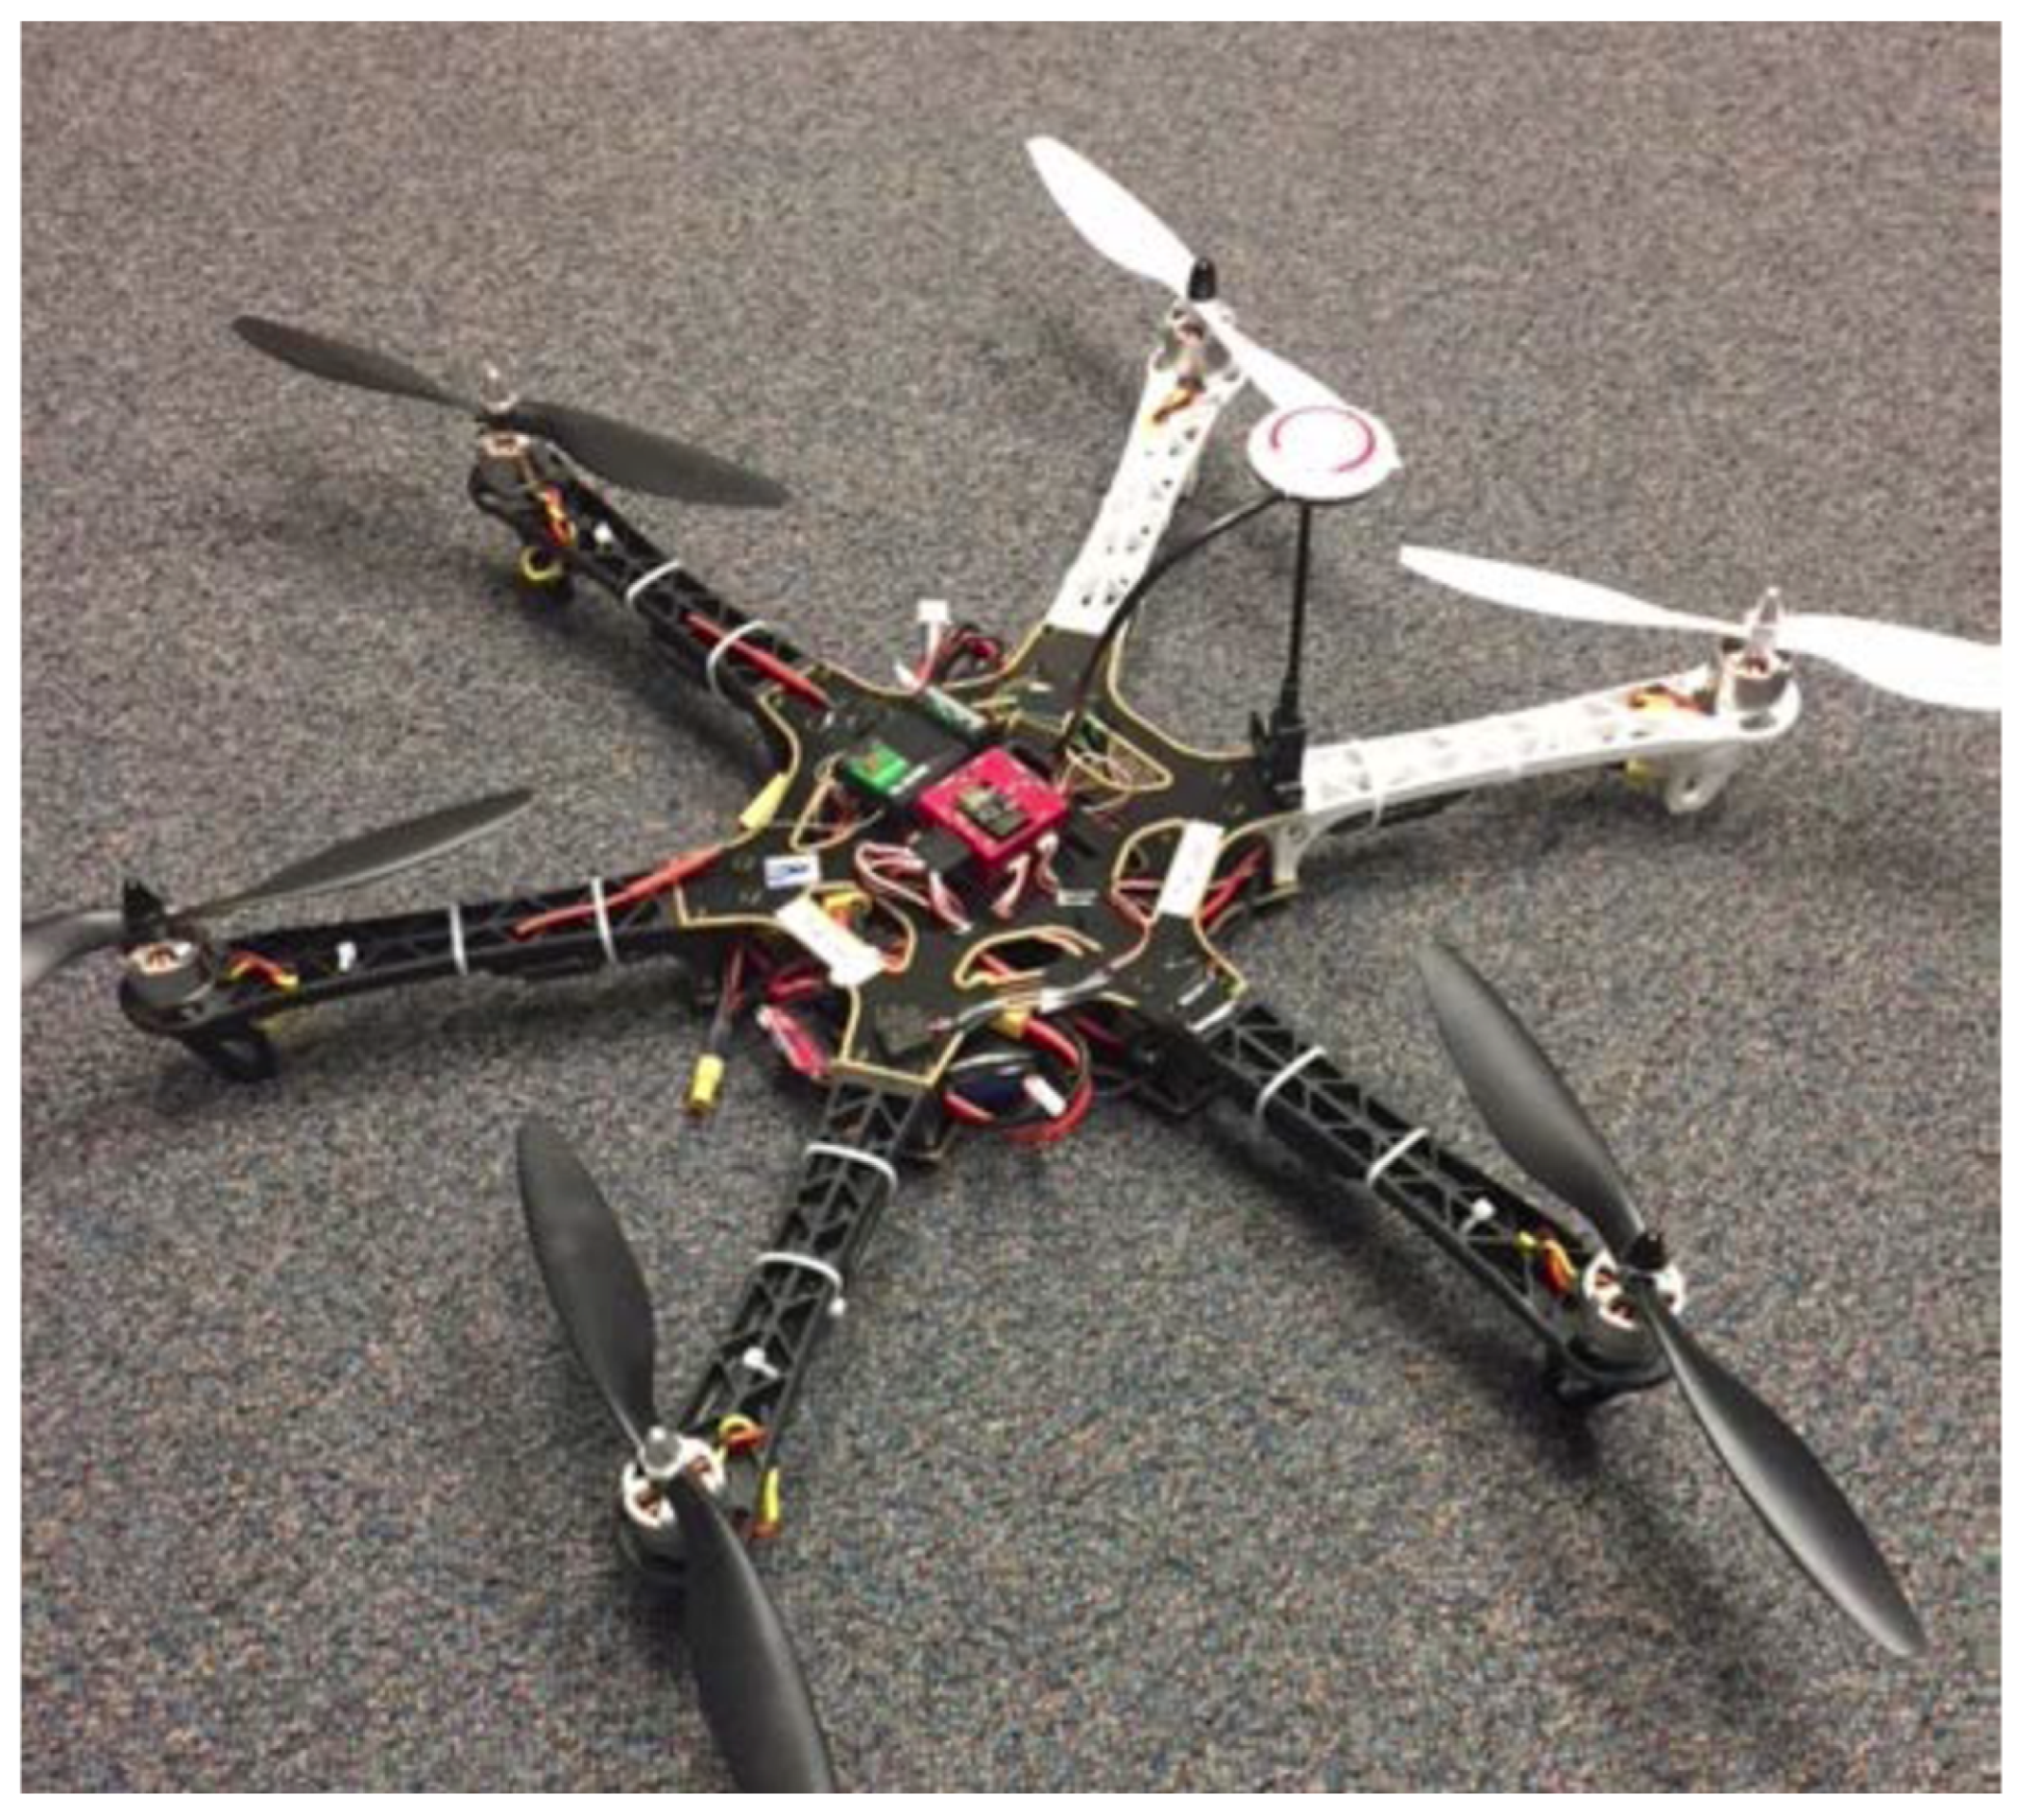 Drones   Free Full-Text   Use of Fire-Extinguishing Balls